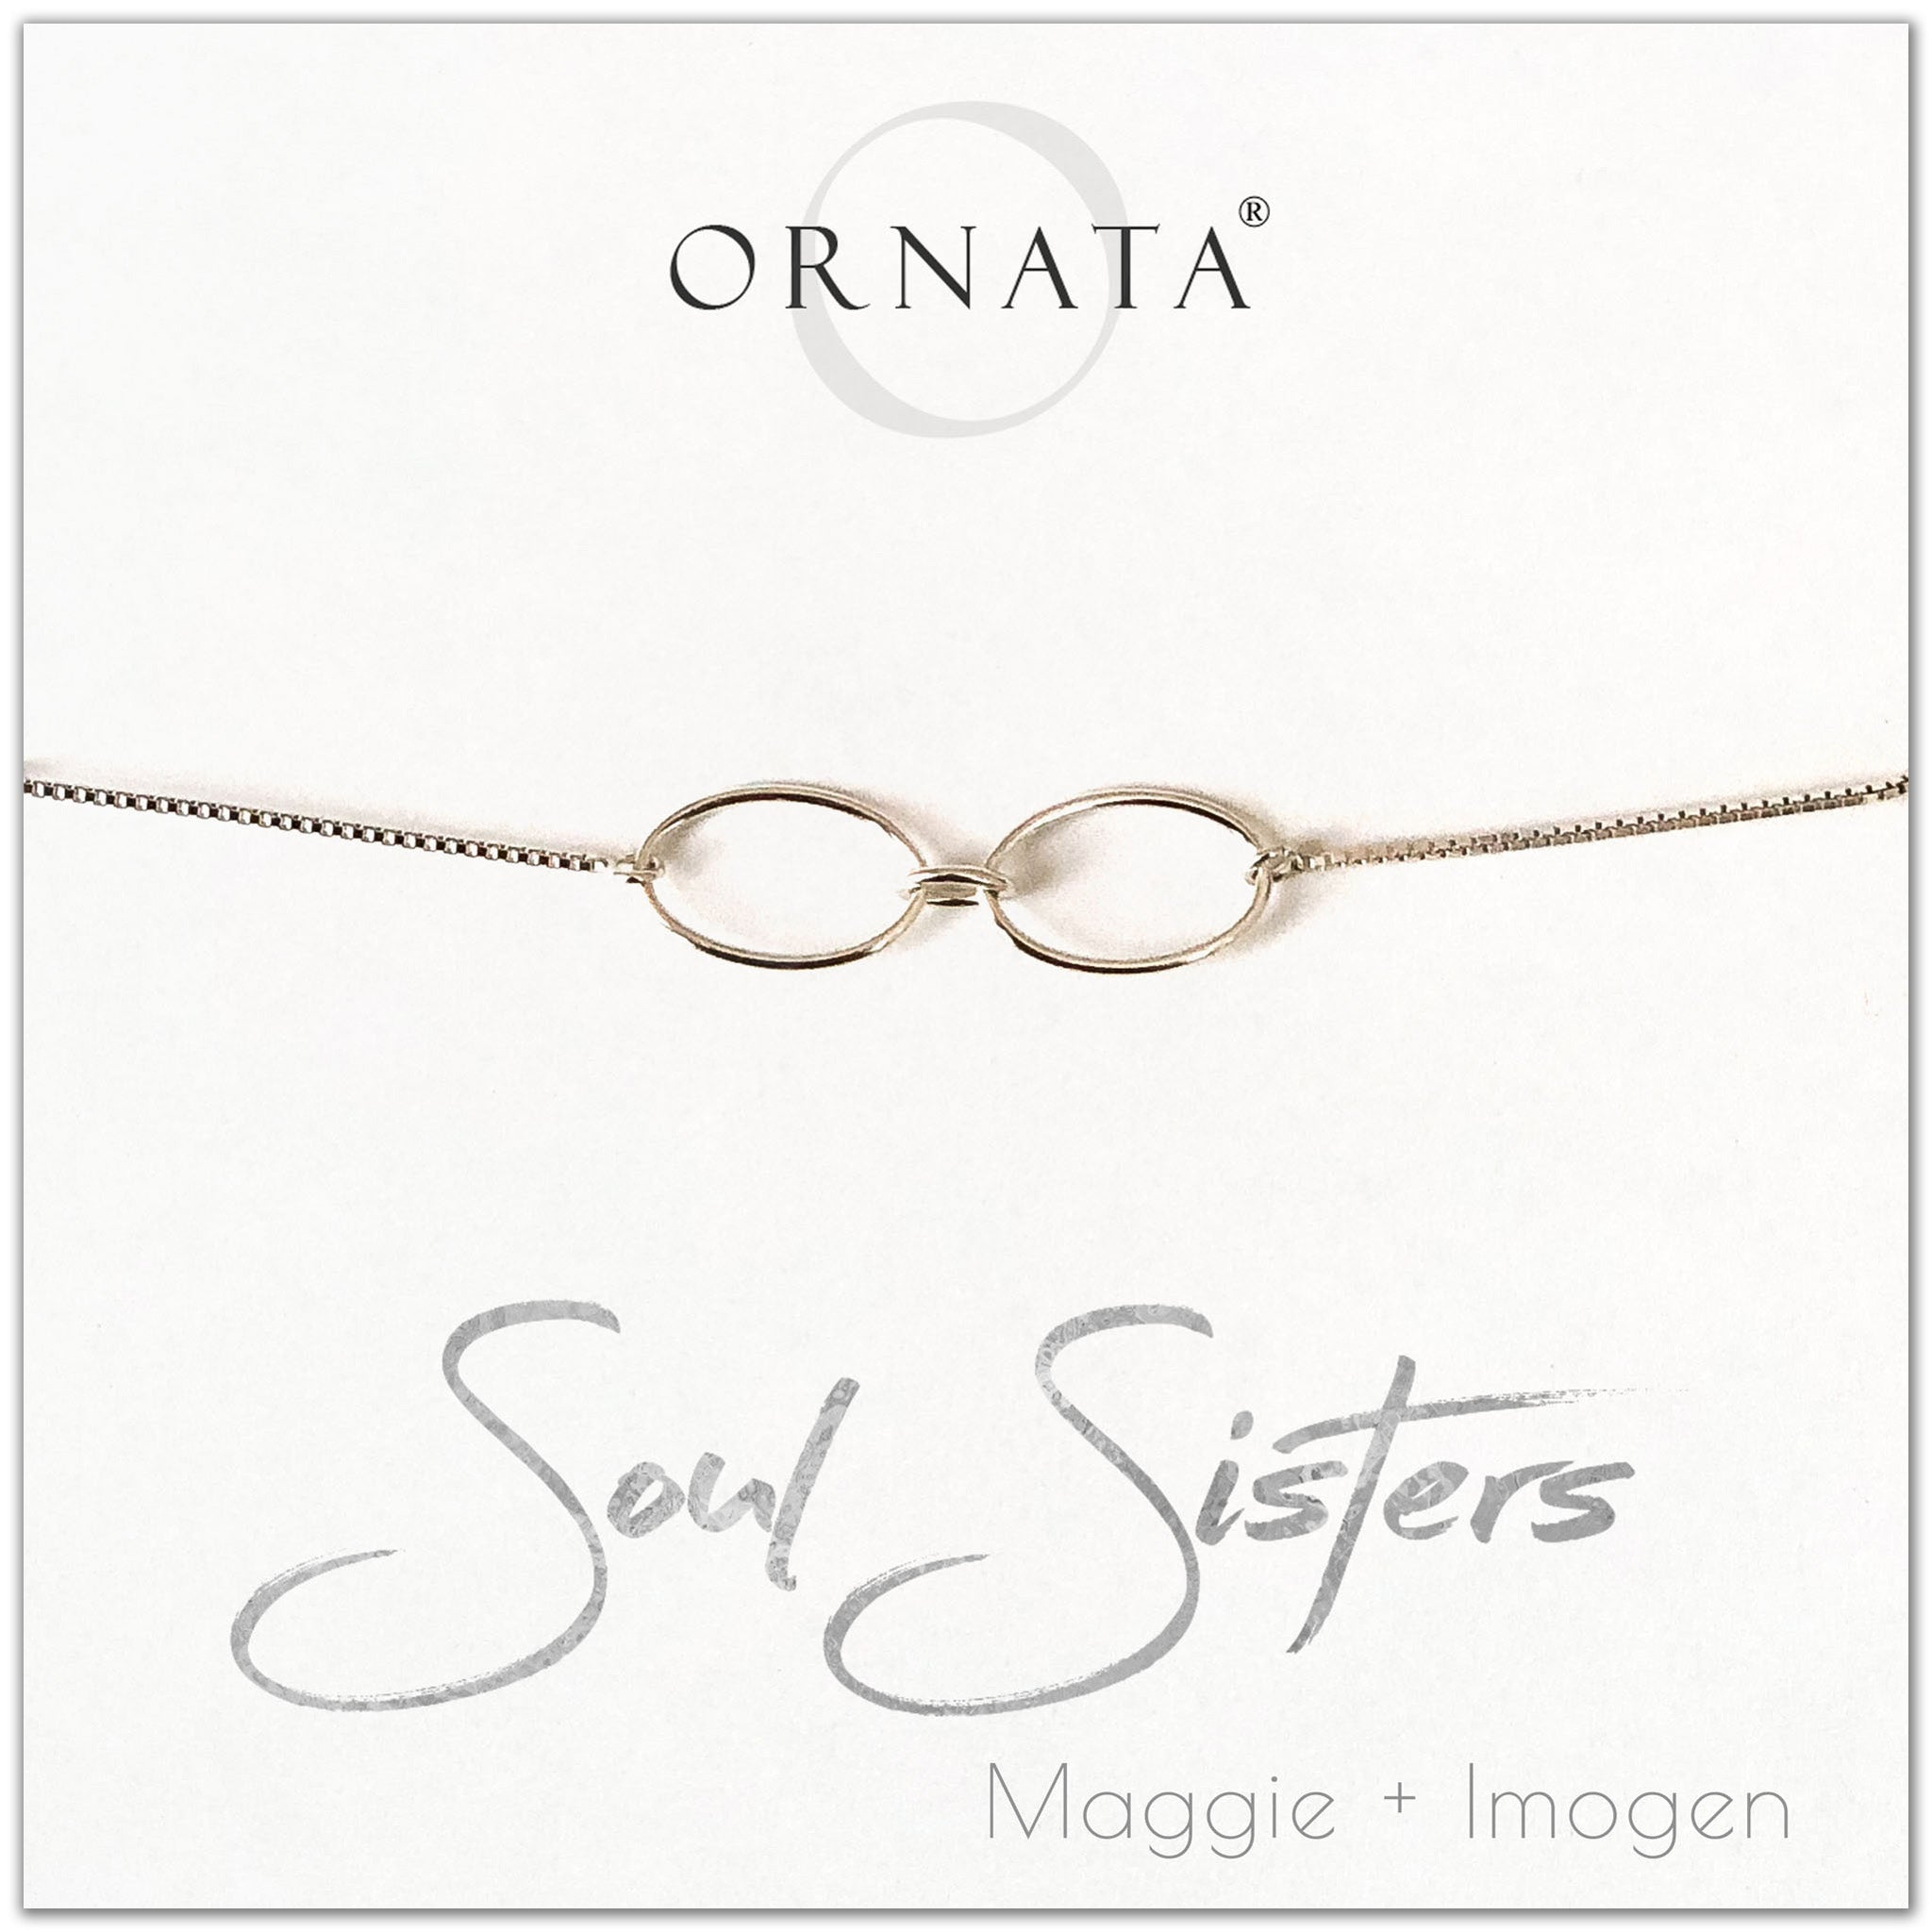 Soul Sisters personalized sterling silver bolo bracelet. Our custom bracelets make good gifts for best friends or sisters.